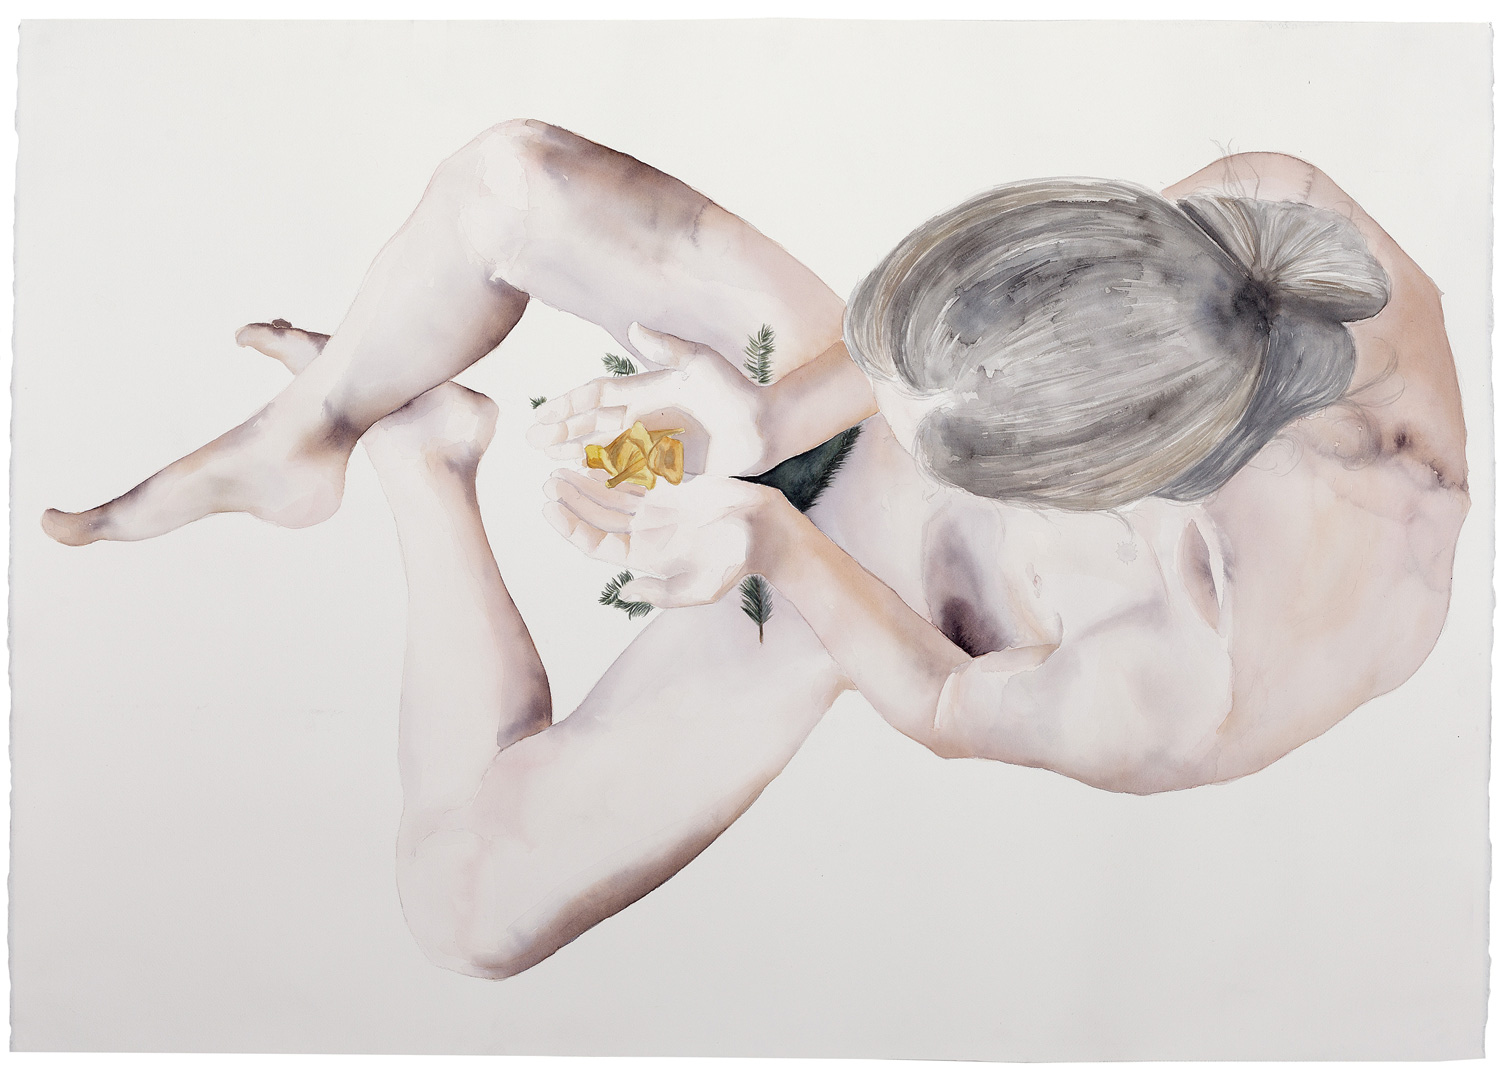 Rituals of transition #3, 2015. Watercolor on paper, 80 x 113 cm